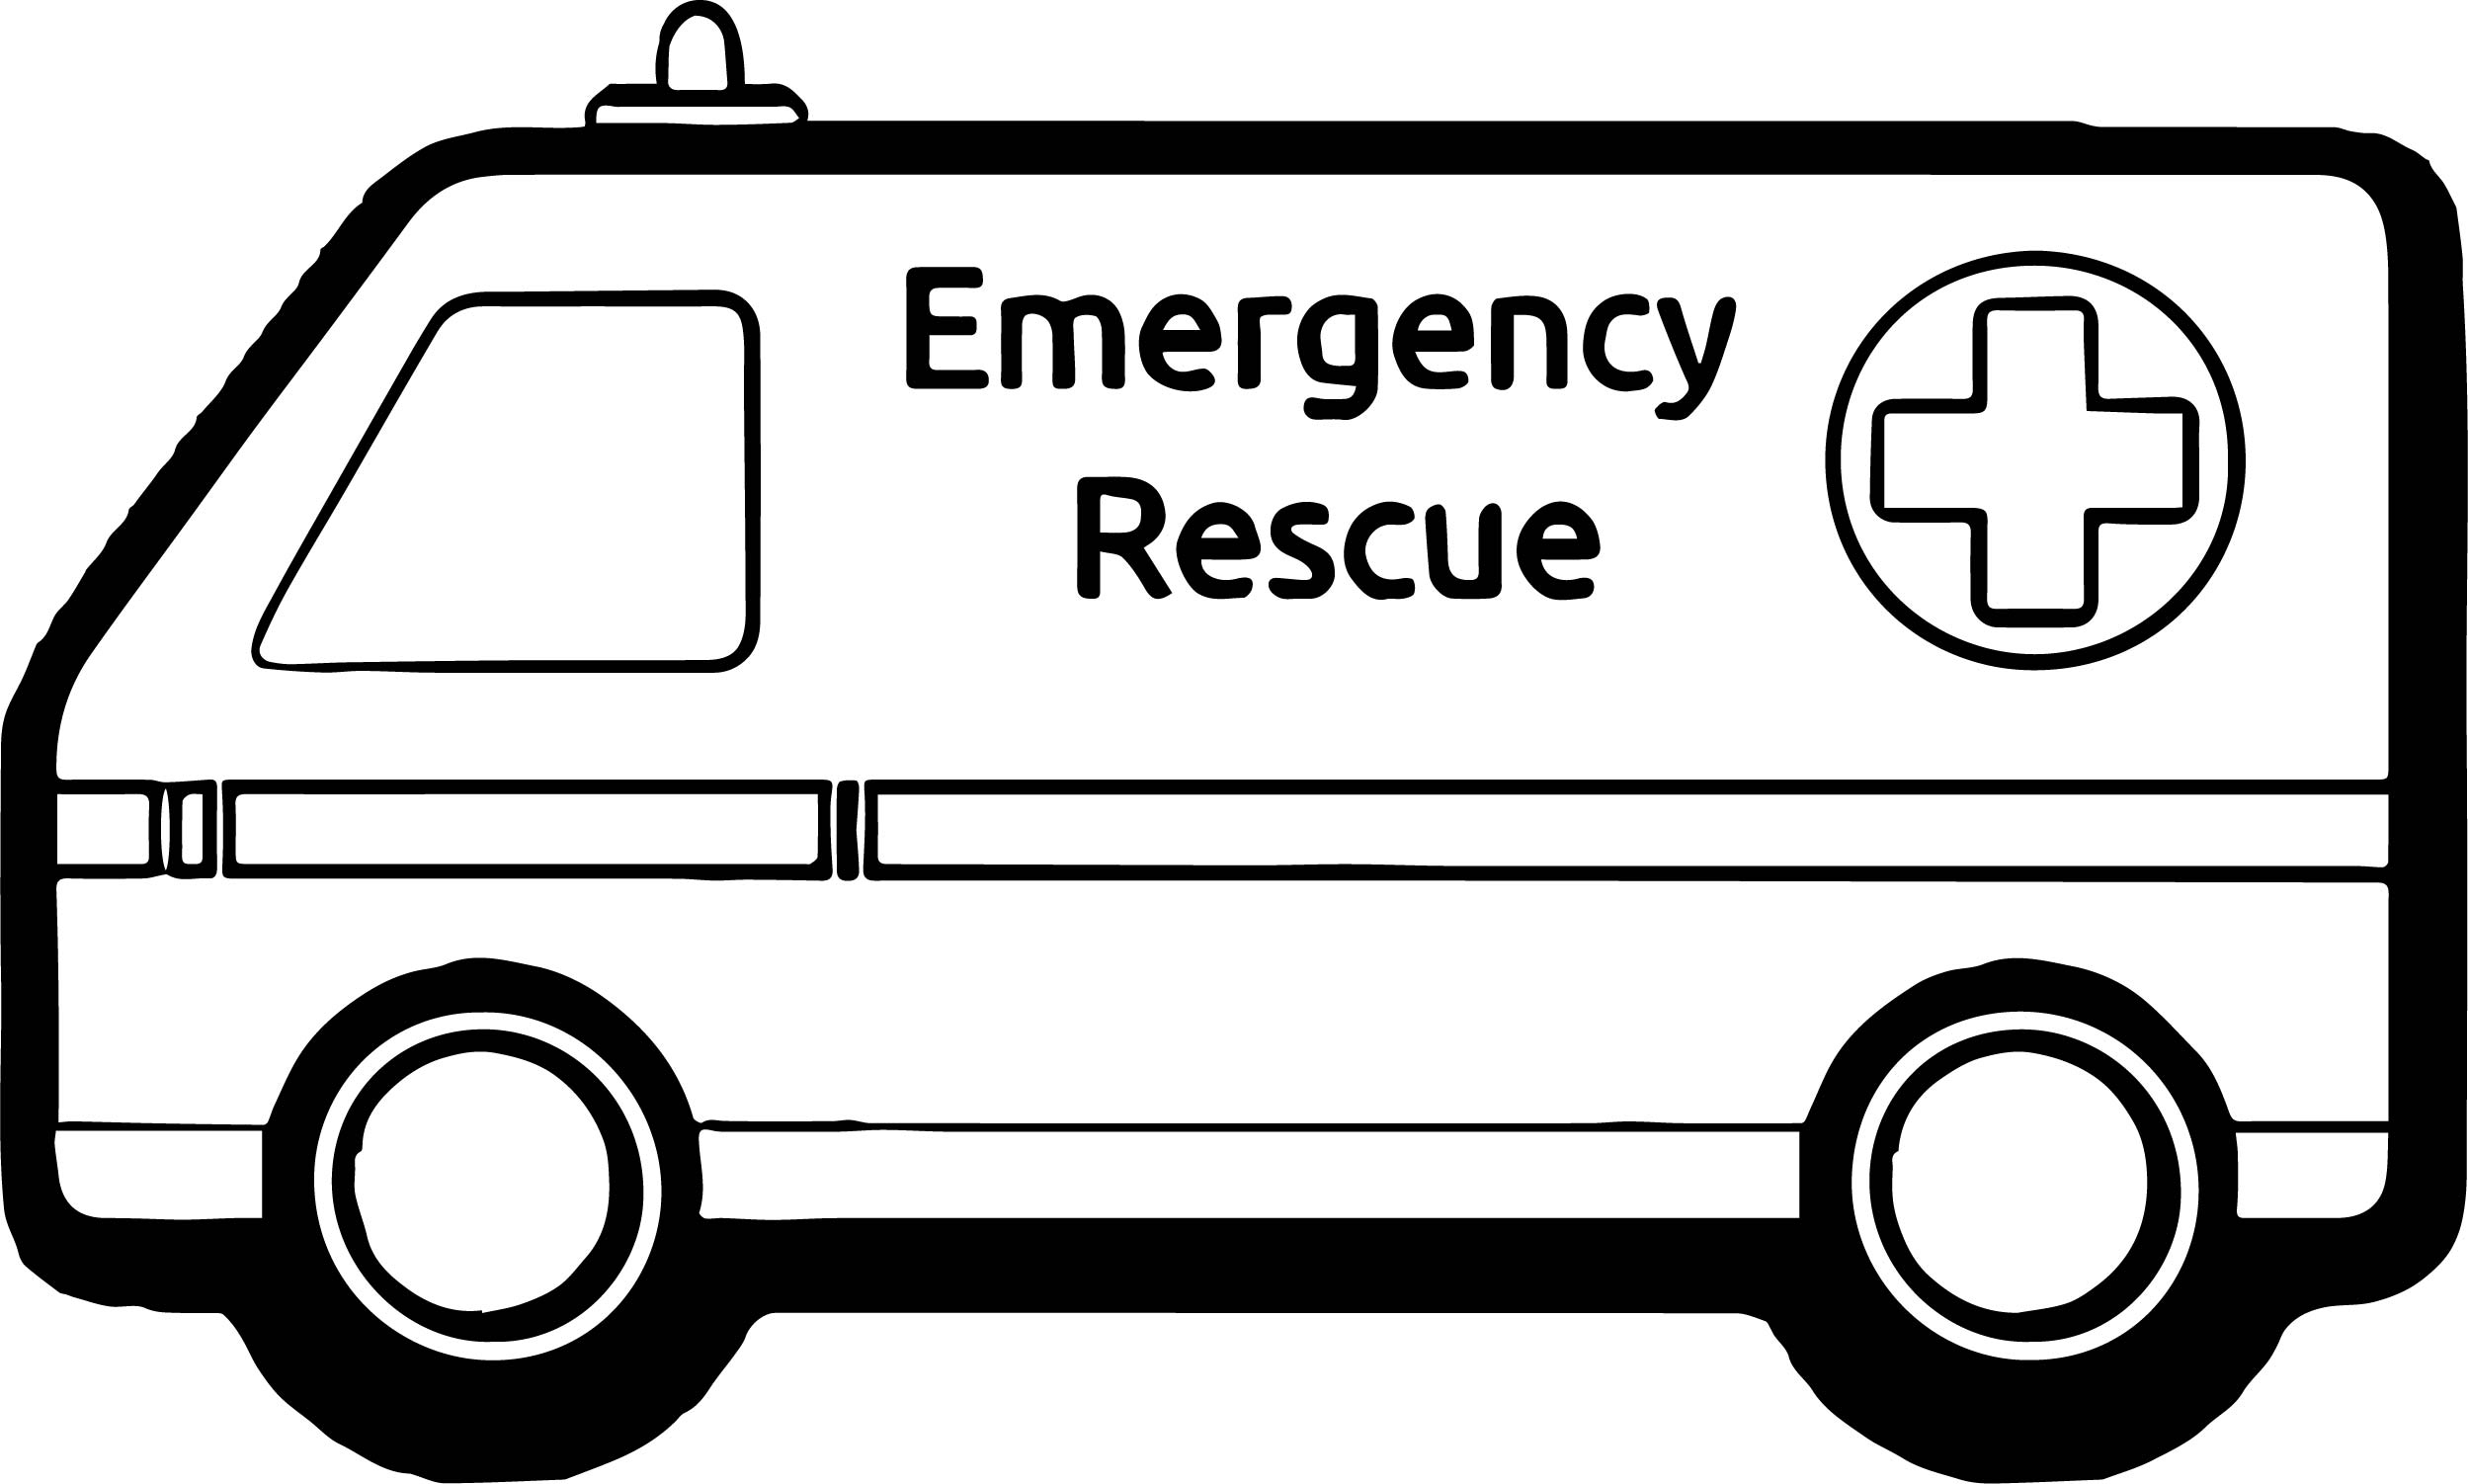 ambulance coloring pages - ambulance emergency rescue car coloring page